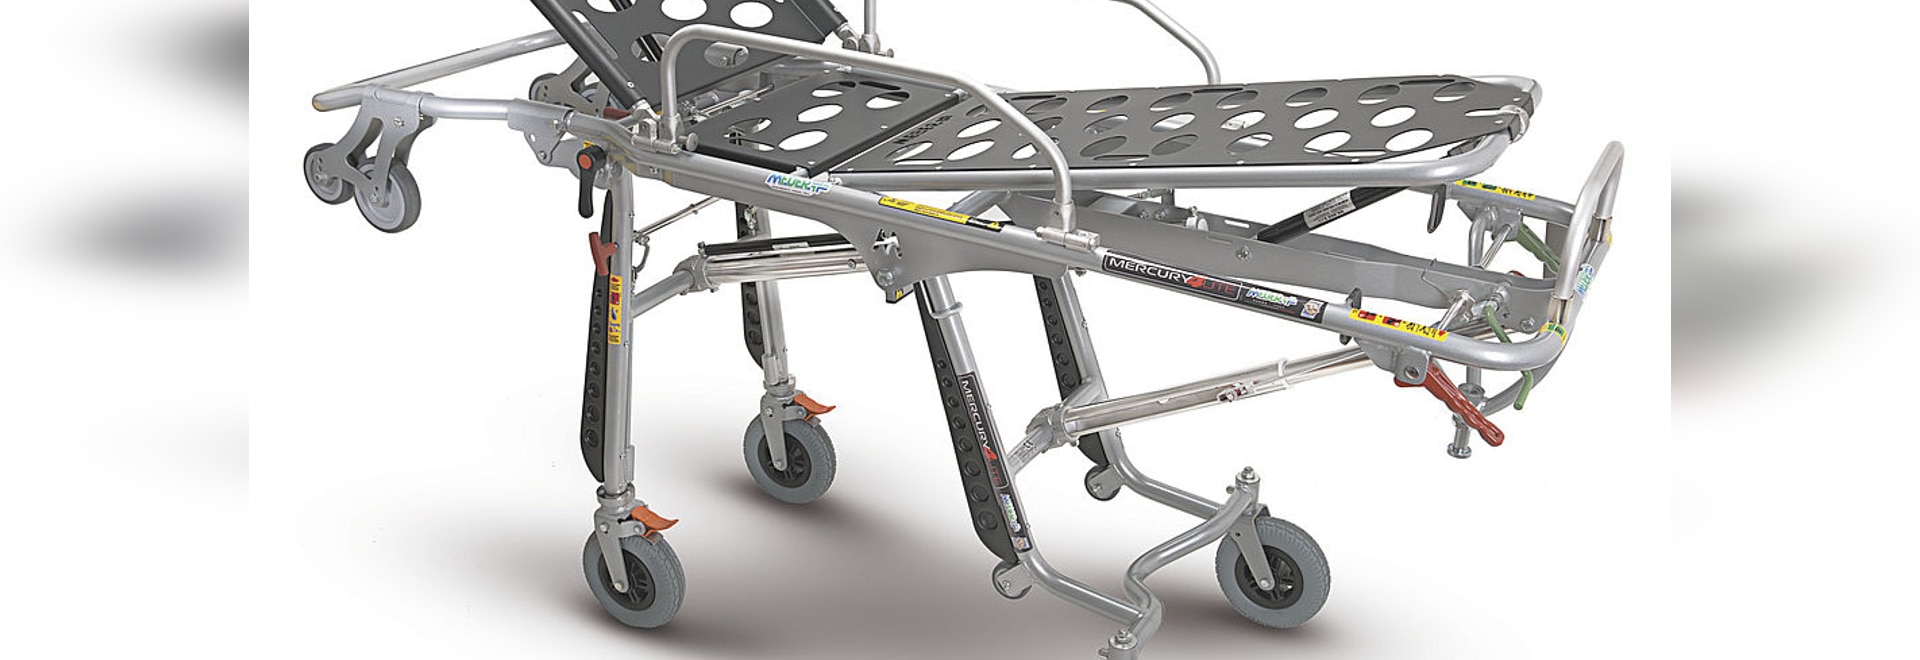 """""""Mercury Lite 4 RG"""" (7080/4RG Proof) - Certified aluminium variable height stretcher with 4 rotating wheels"""